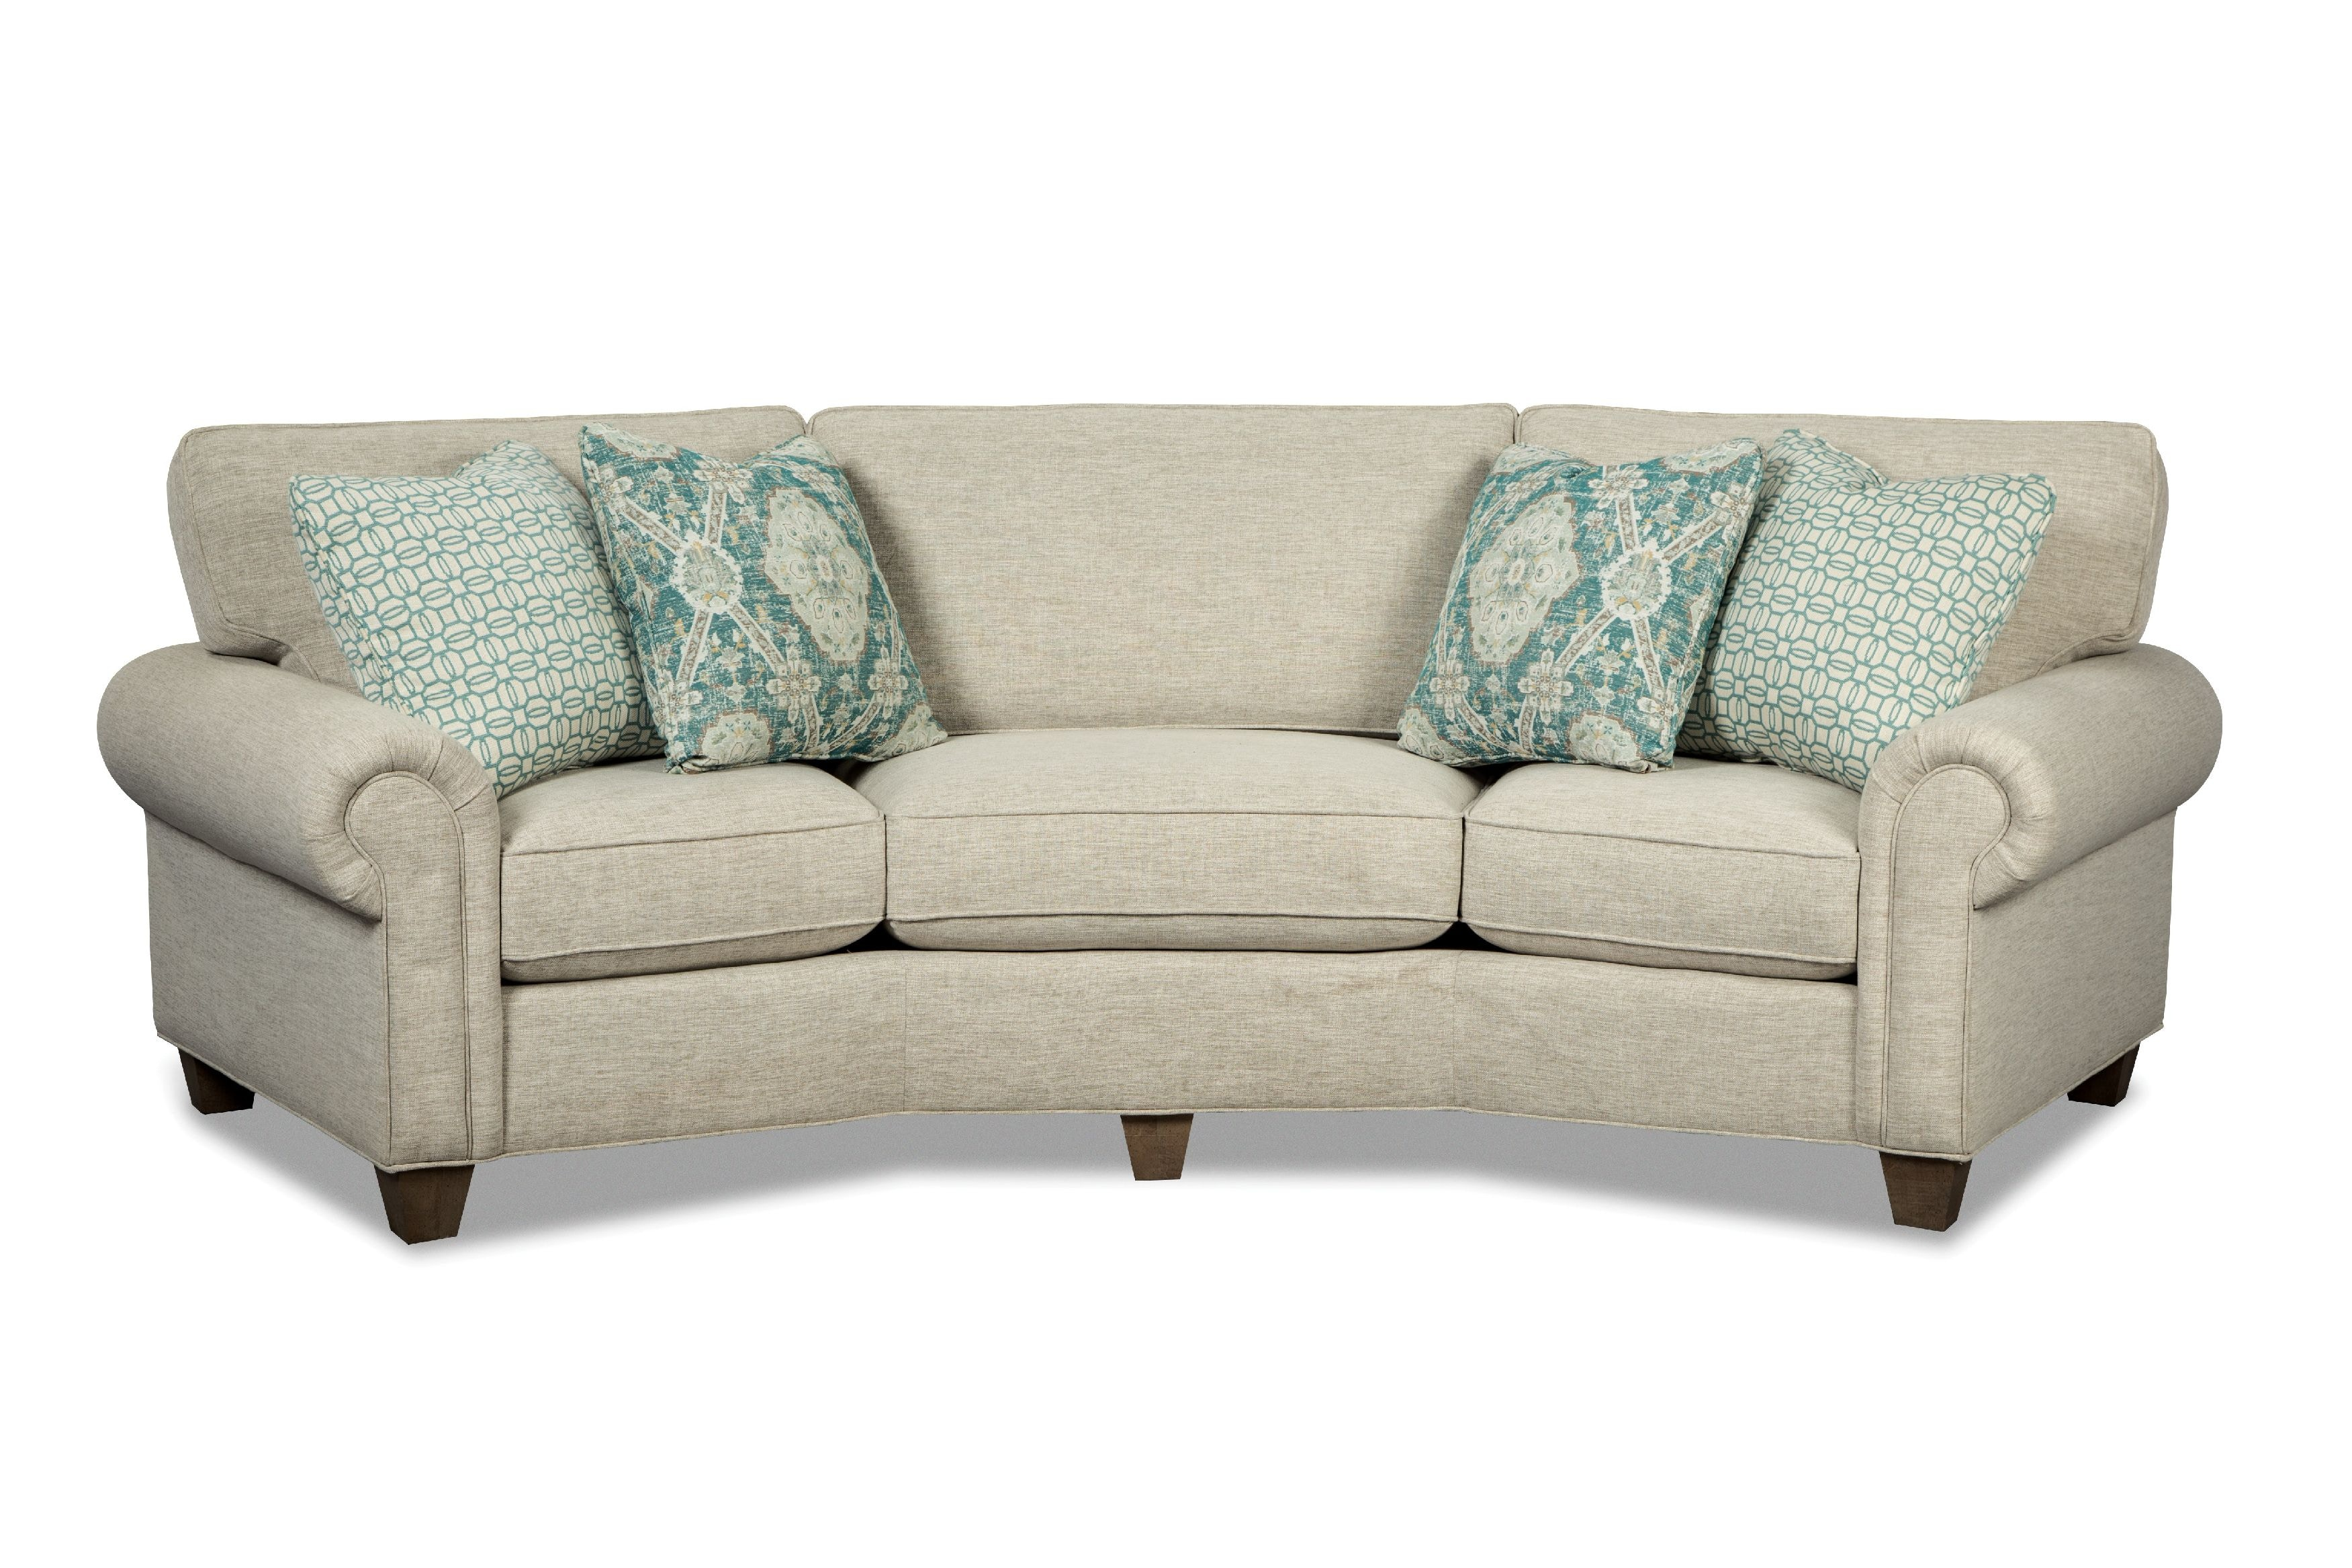 ... Craftmaster Sofa C9 (Sleeper Also Available) ...